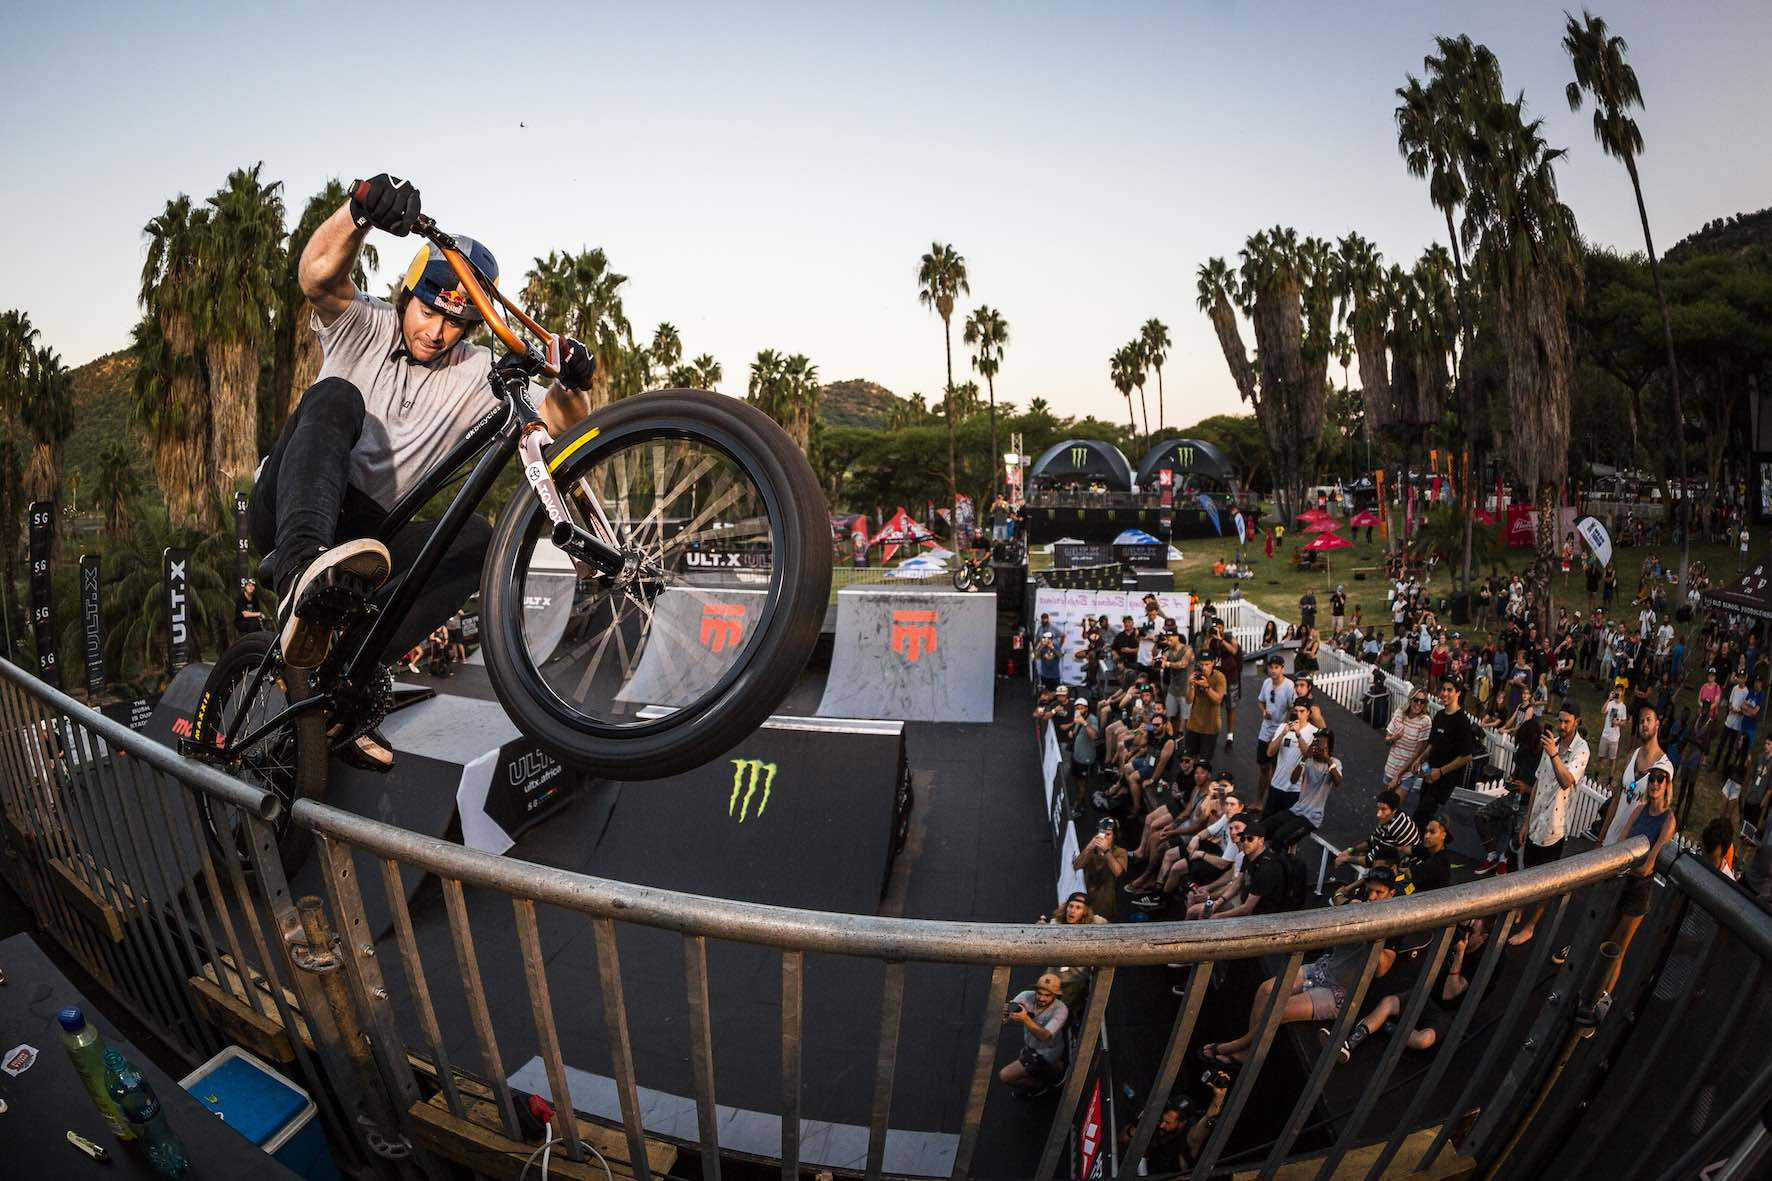 BMX Action at its best at the 2019 ULT.X Action Sports Festival at Sun City